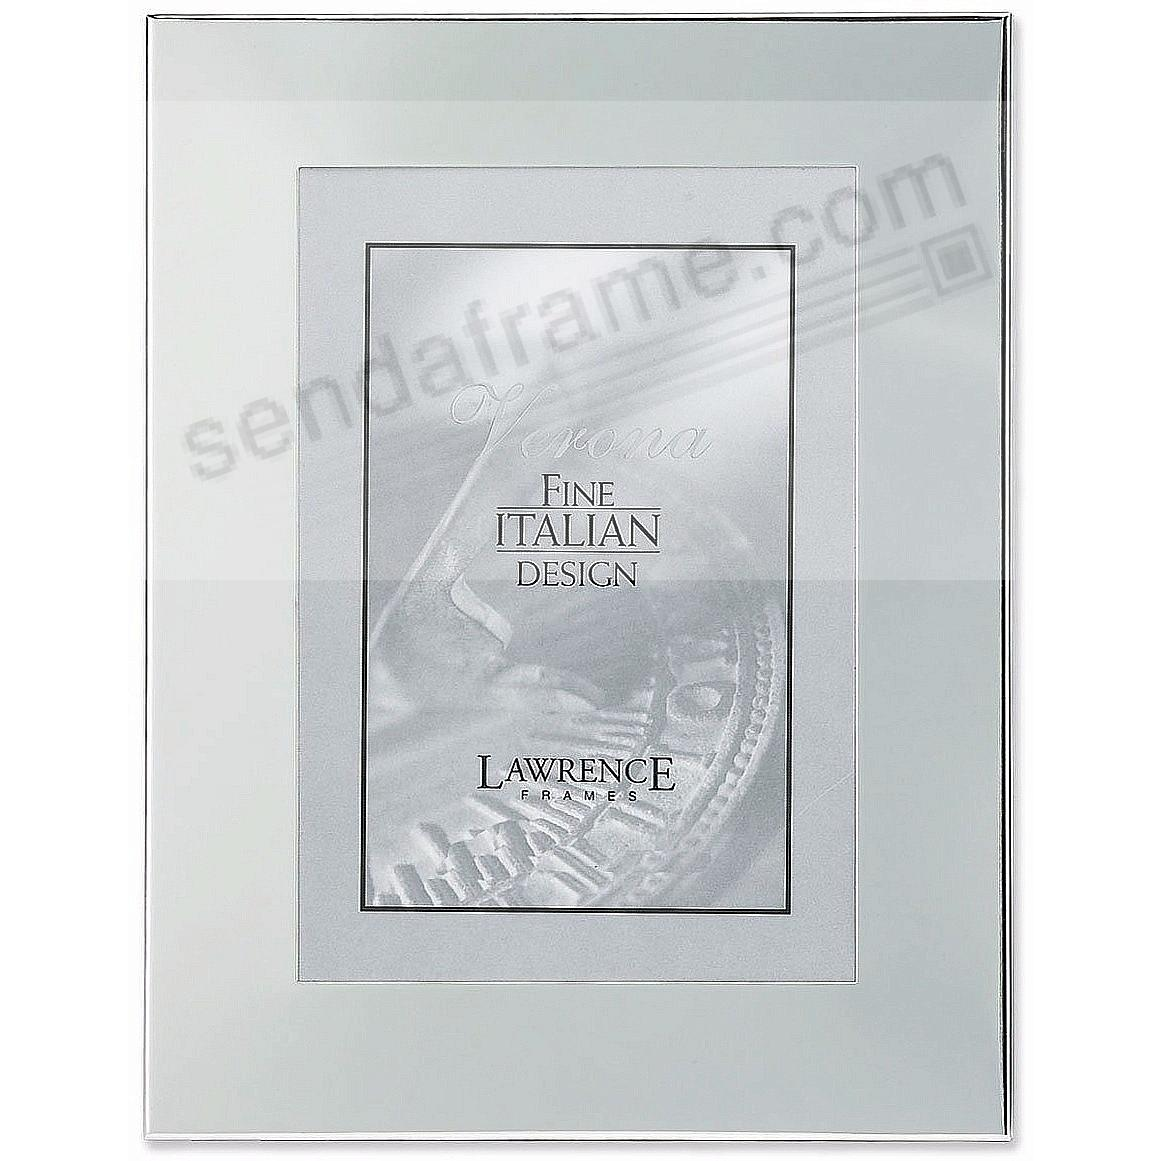 Lawrence framesr silver plated 5x7 engraveable picture for Engraved digital photo frame